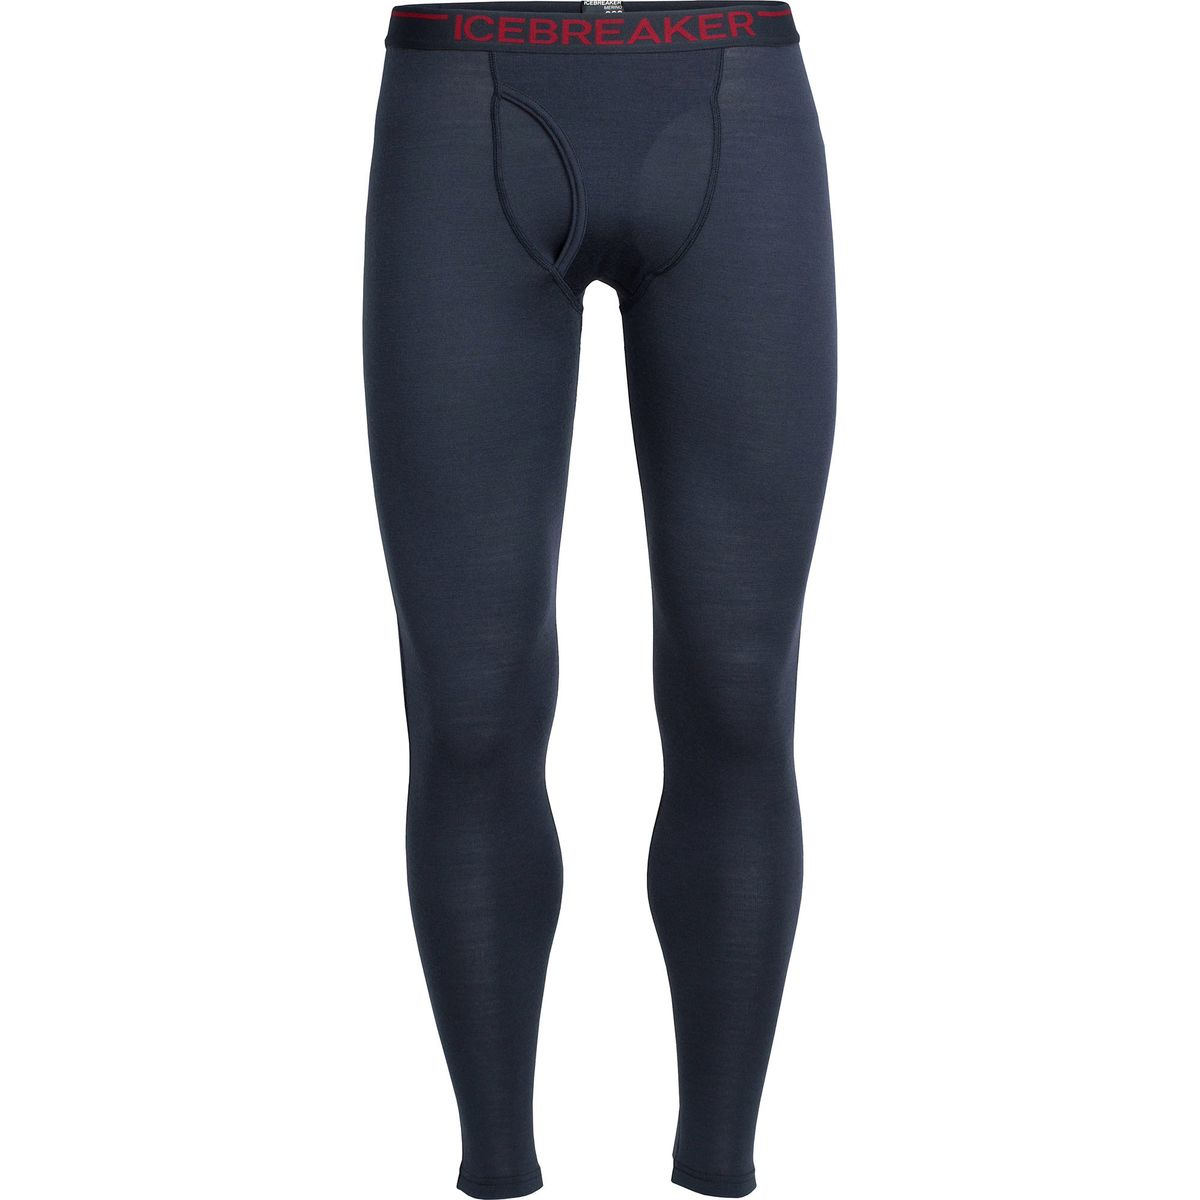 Icebreaker Bodyfit 260 Midweight Apex Leggings with Fly - Men